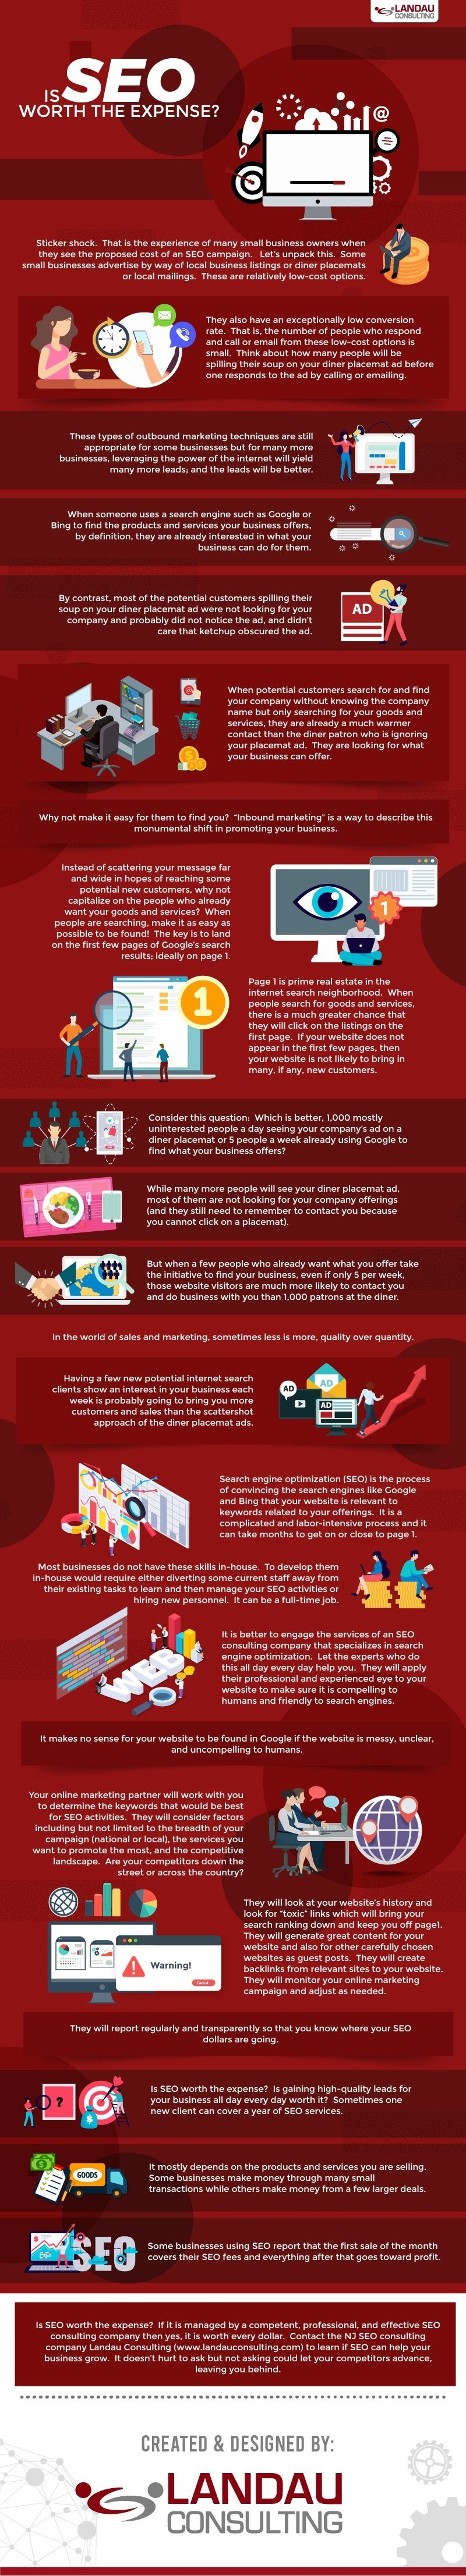 Is SEO Worth the Expense? #infographic